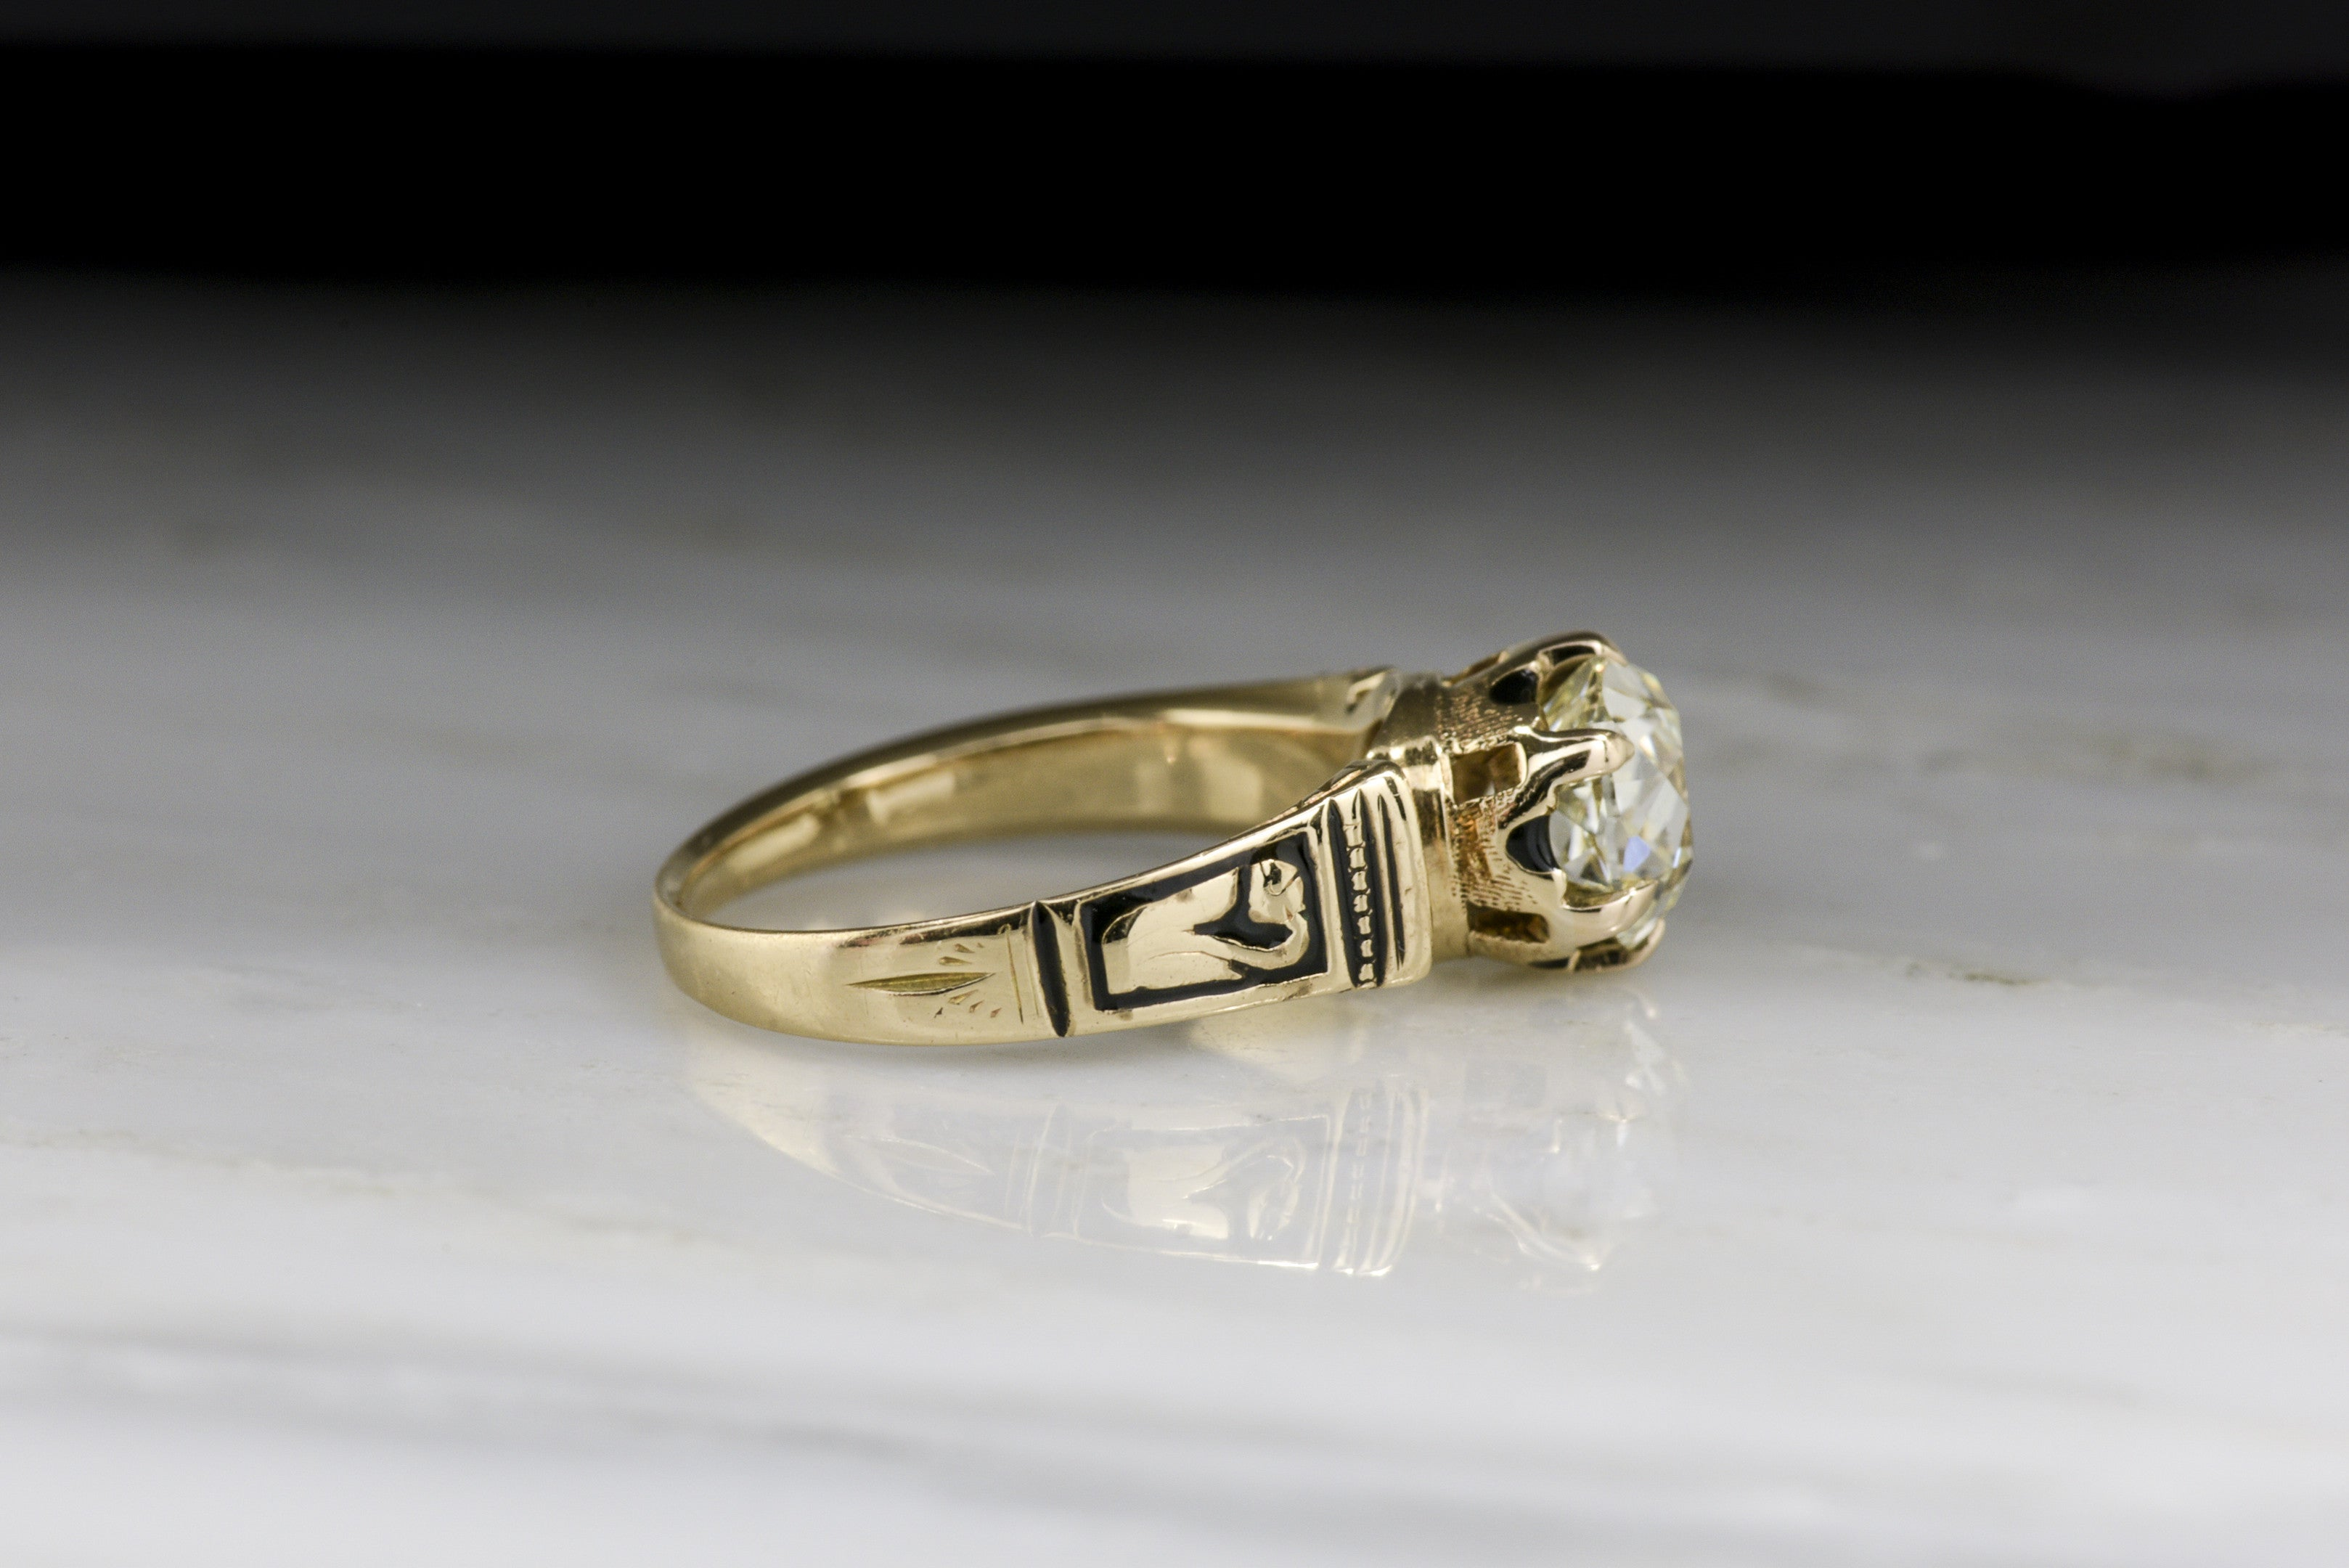 Antique Victorian Engagement Ring: Gia Certified 182 Carat Old Mine  Cushion Cut Diamond In Roseyellow Gold With Black Enamel